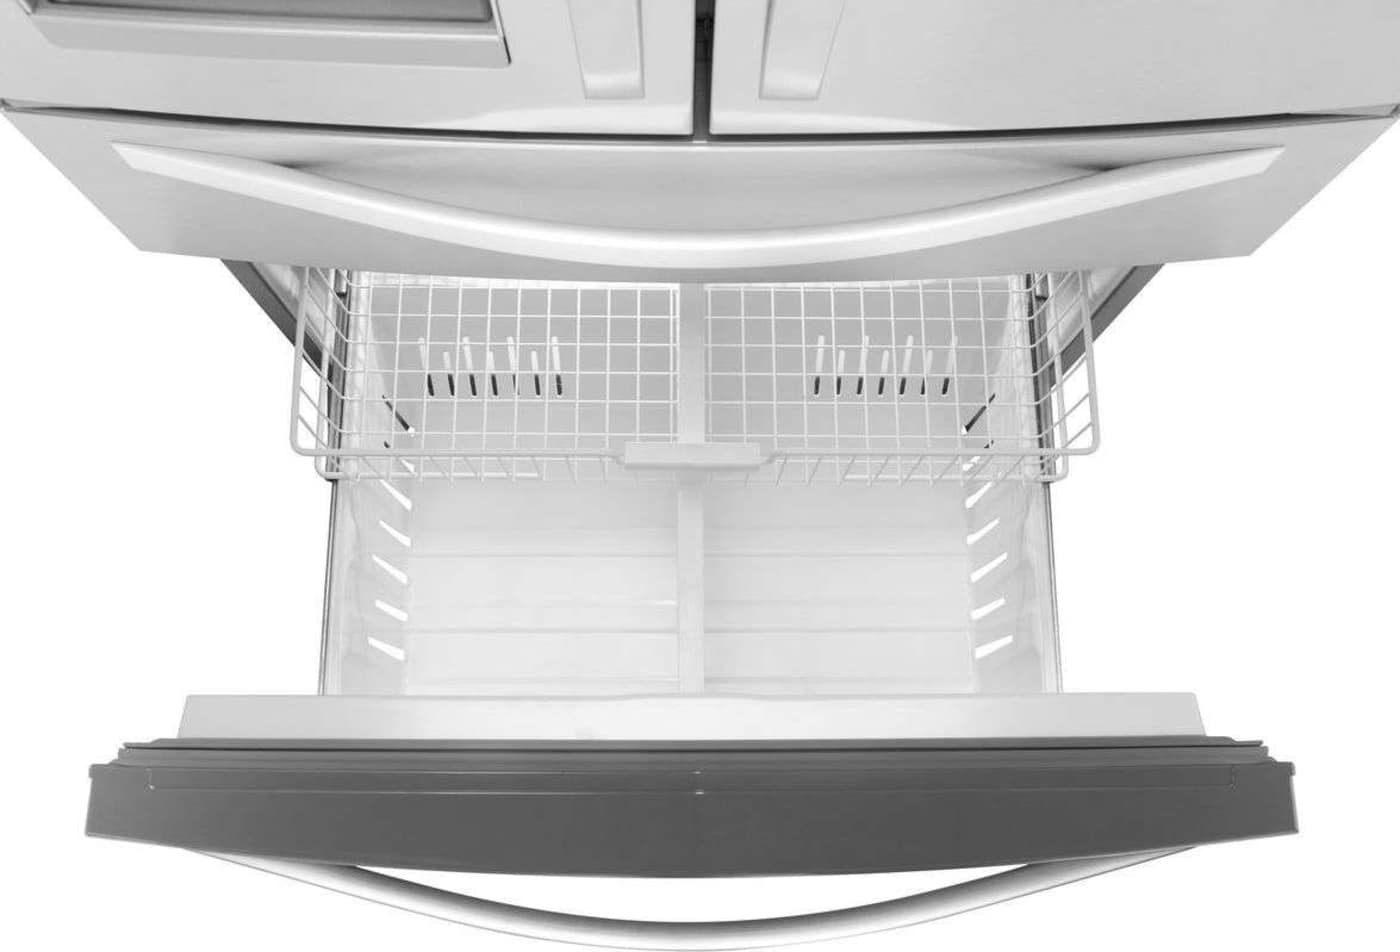 Whirlpool Wrx735sdbm 36 Quot 25 0 Cu Ft Stainless Steel